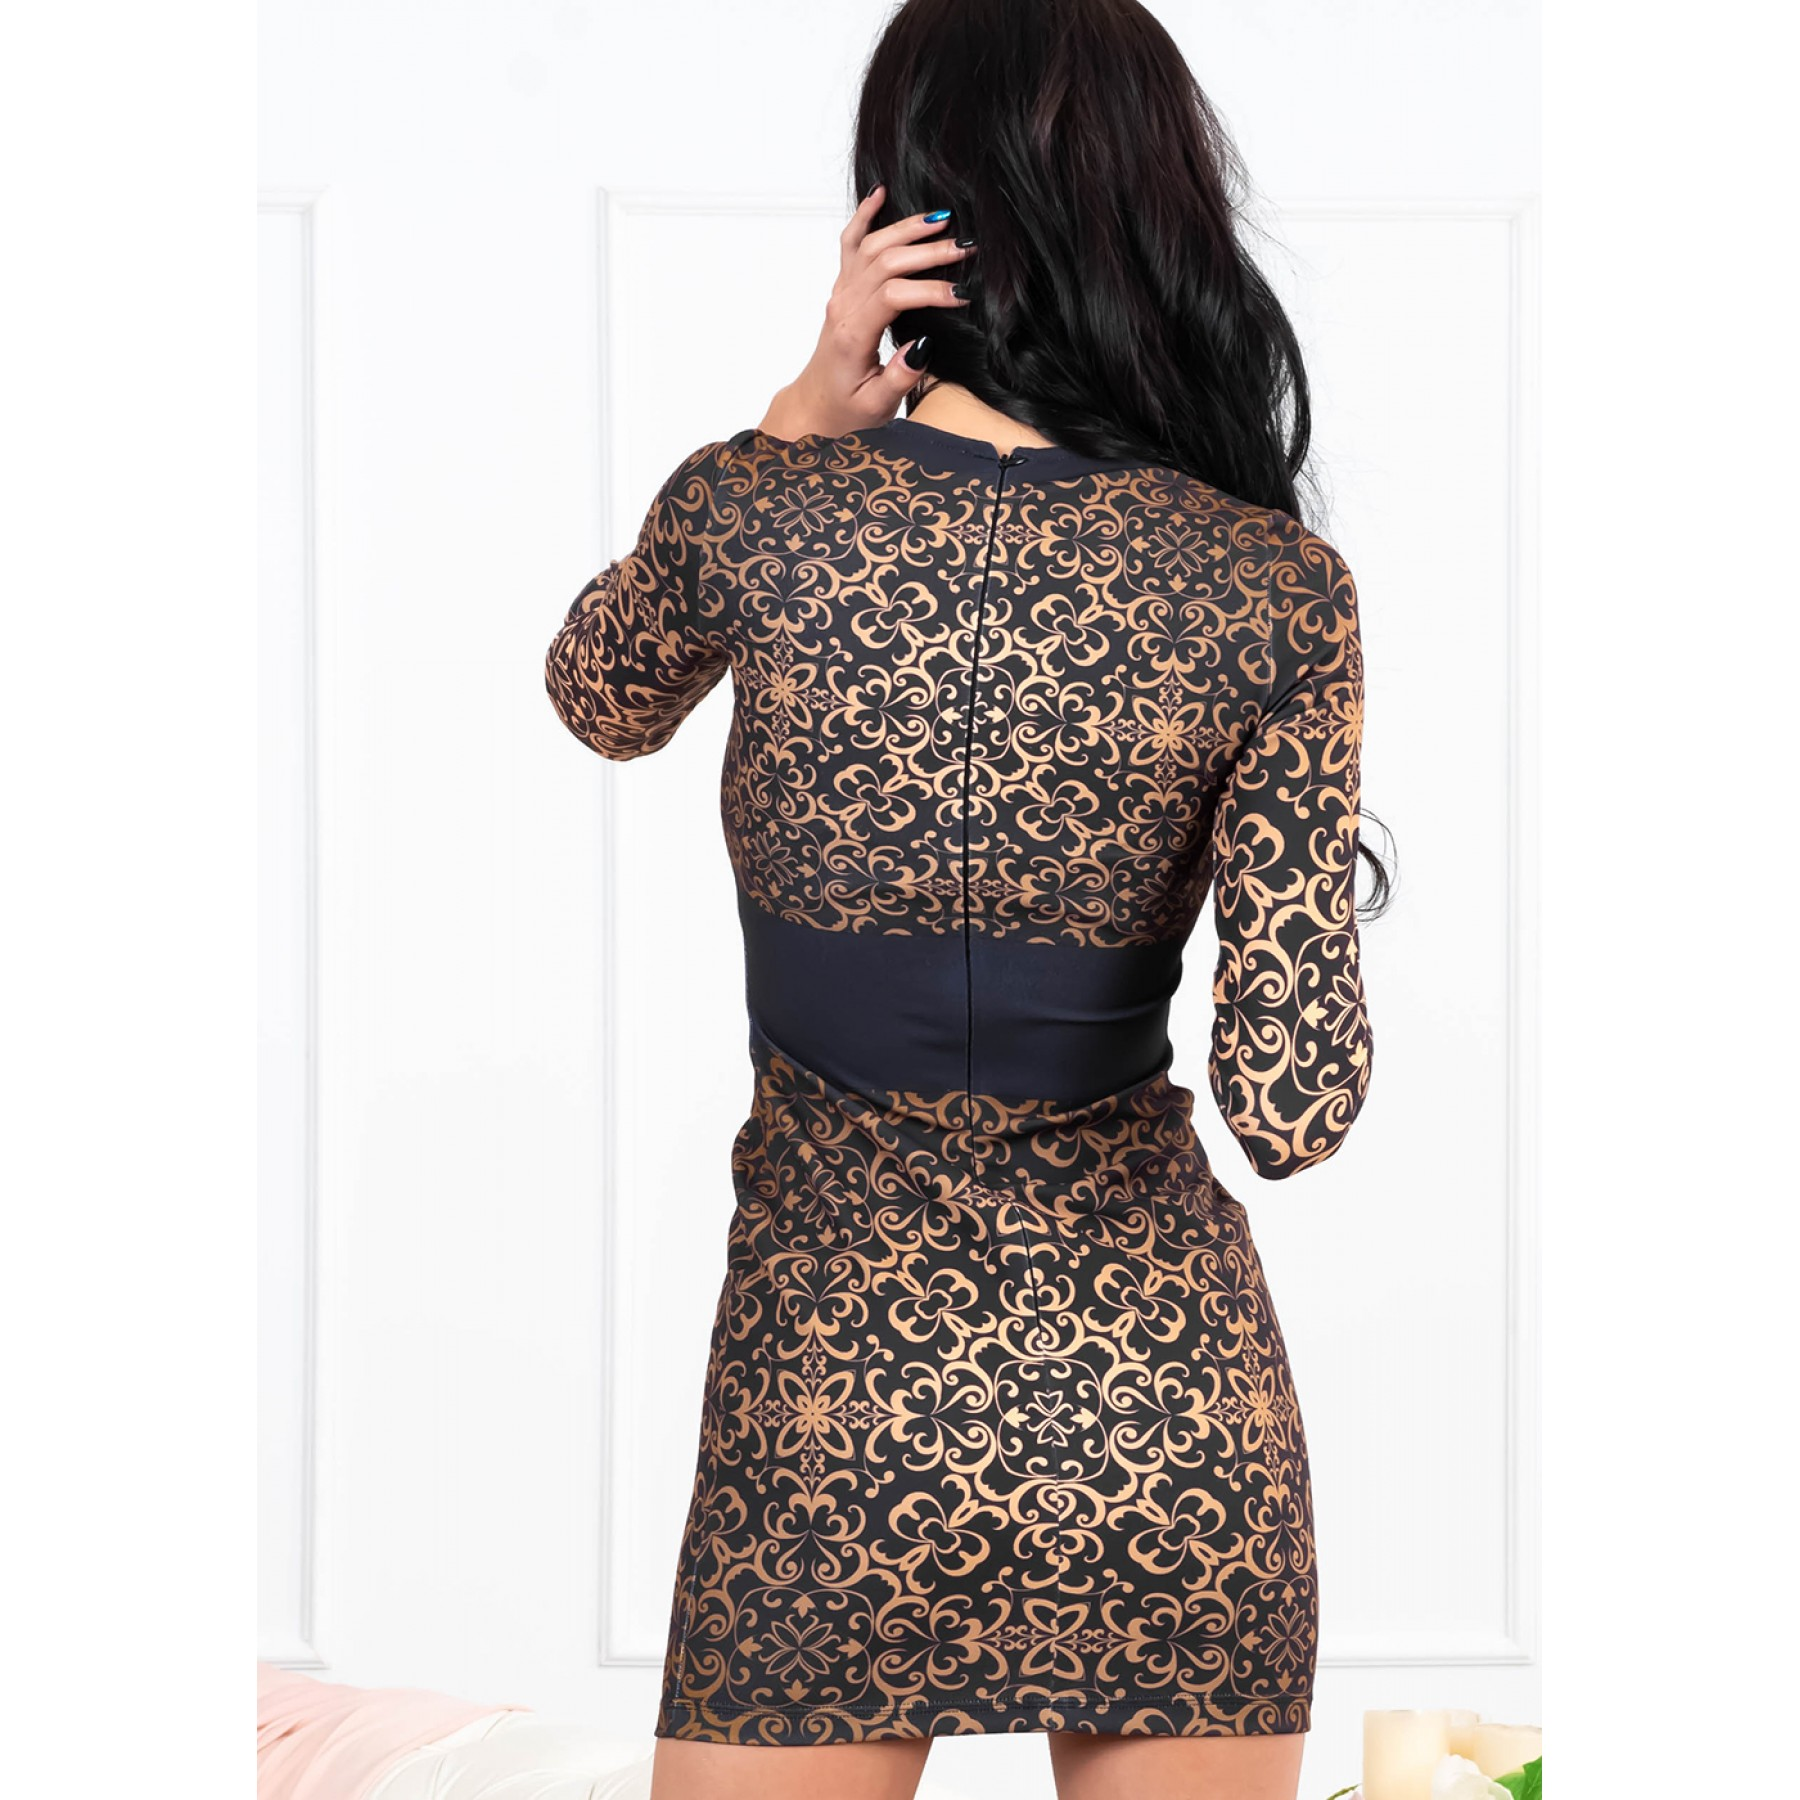 Patricia Mini Dress (Black/Gold)